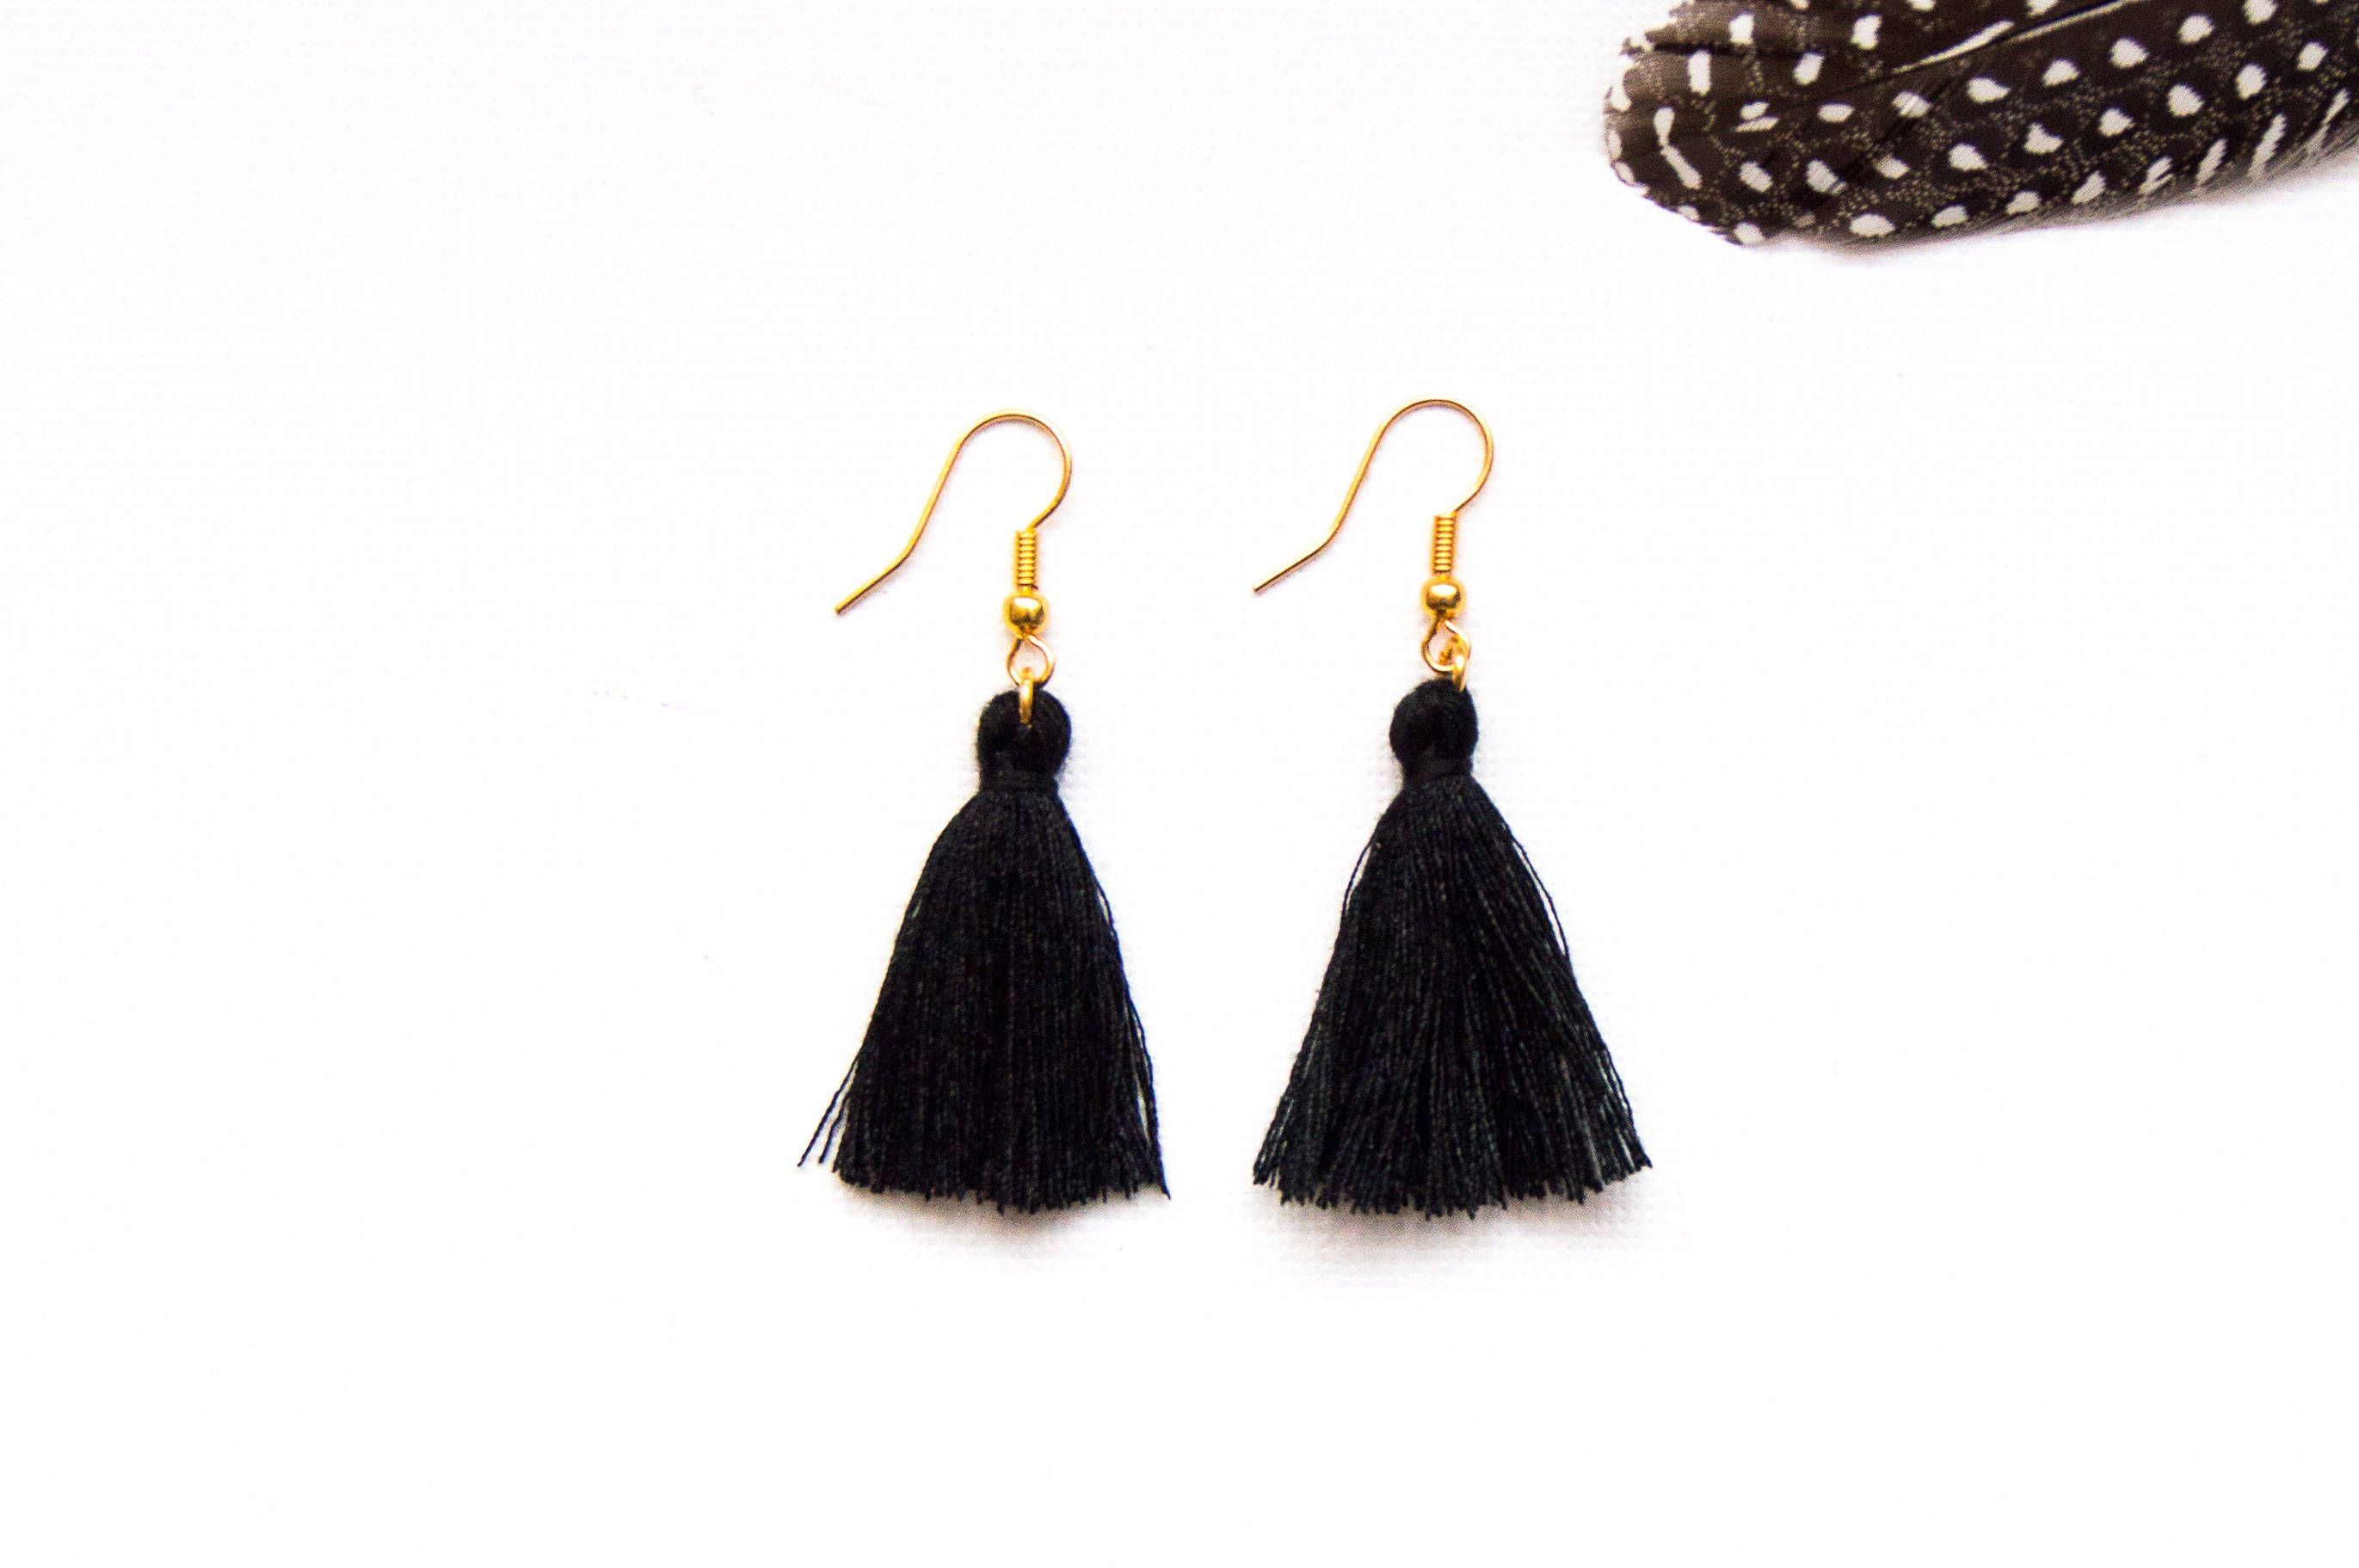 seed listing fringe deuu bead fullxfull earrings il jewelry statement chandelier tassel long